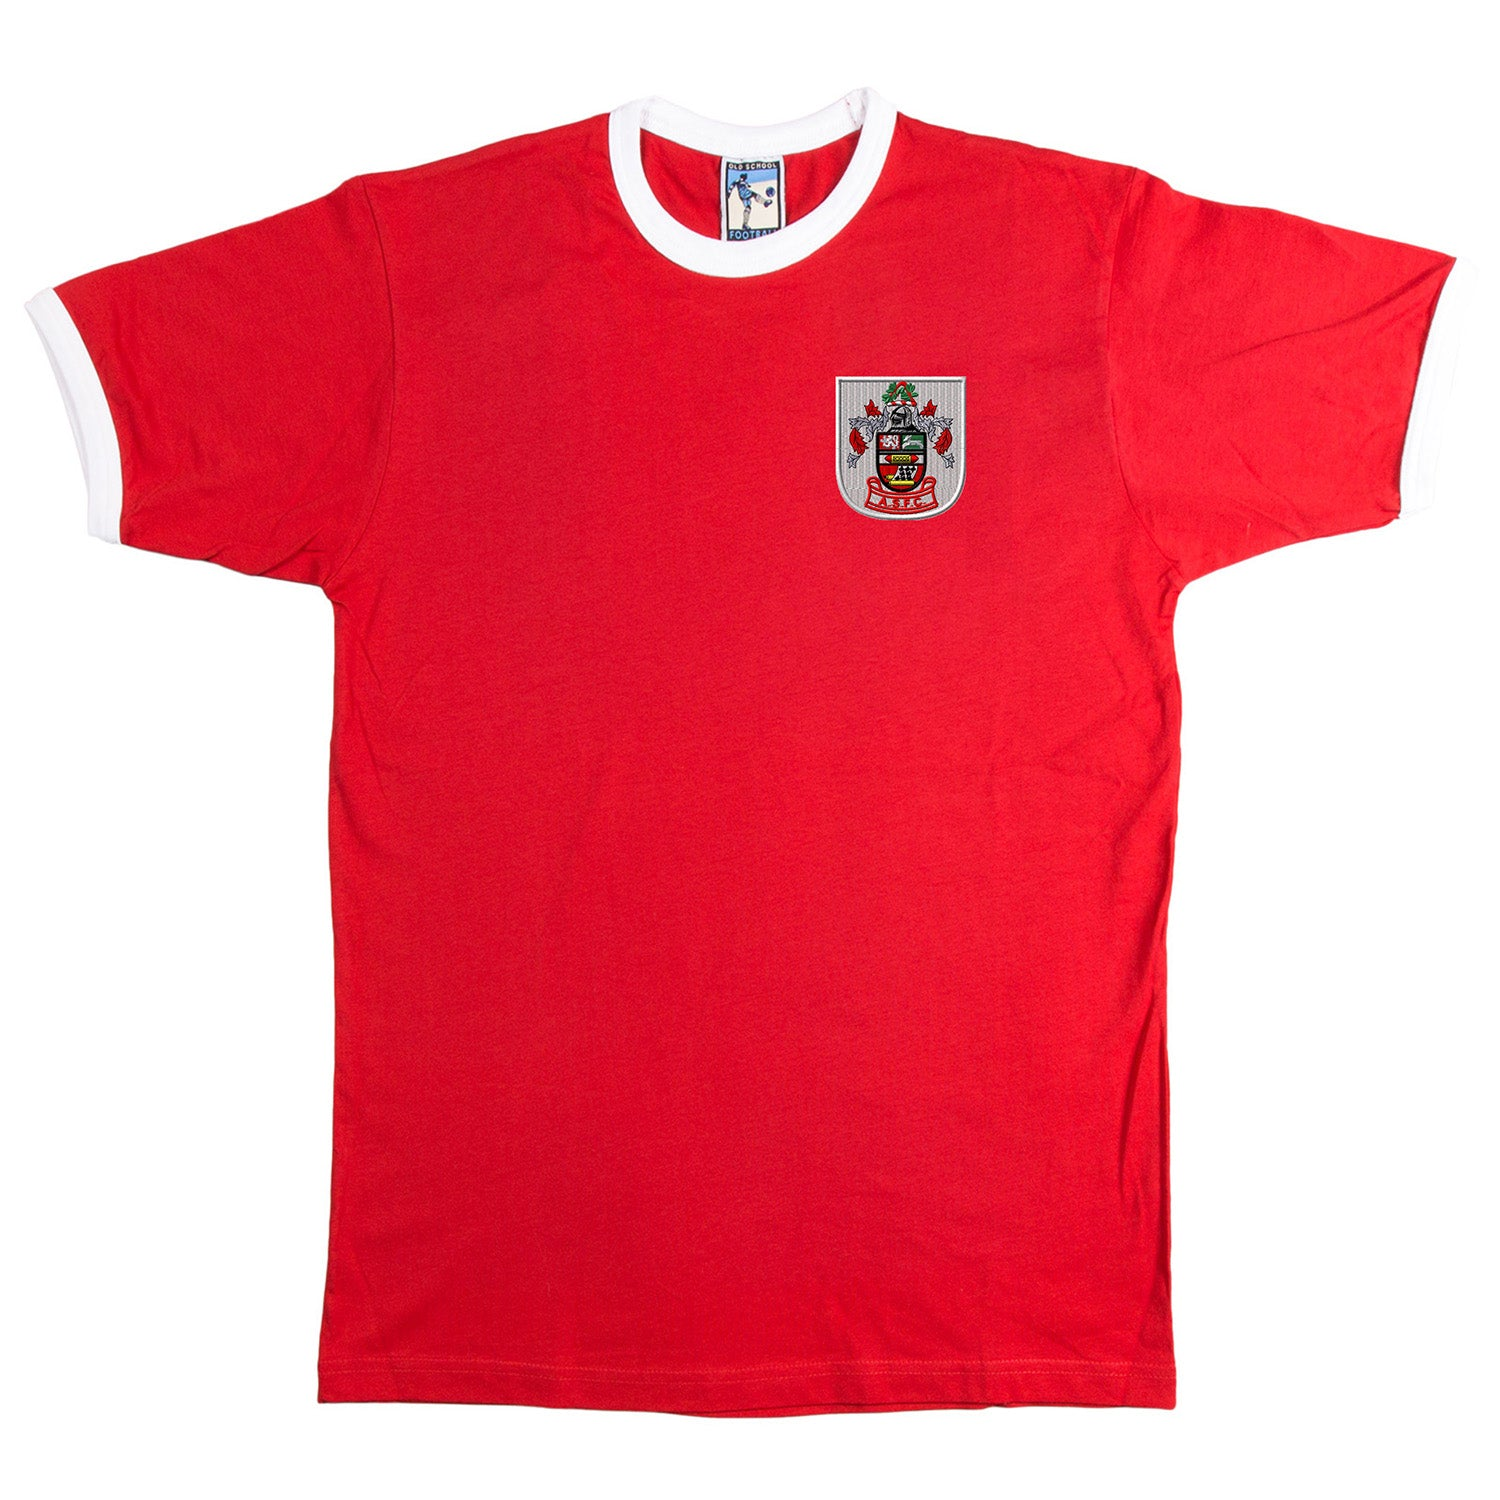 Accrington Stanley 1950's T-shirt - Old School Football